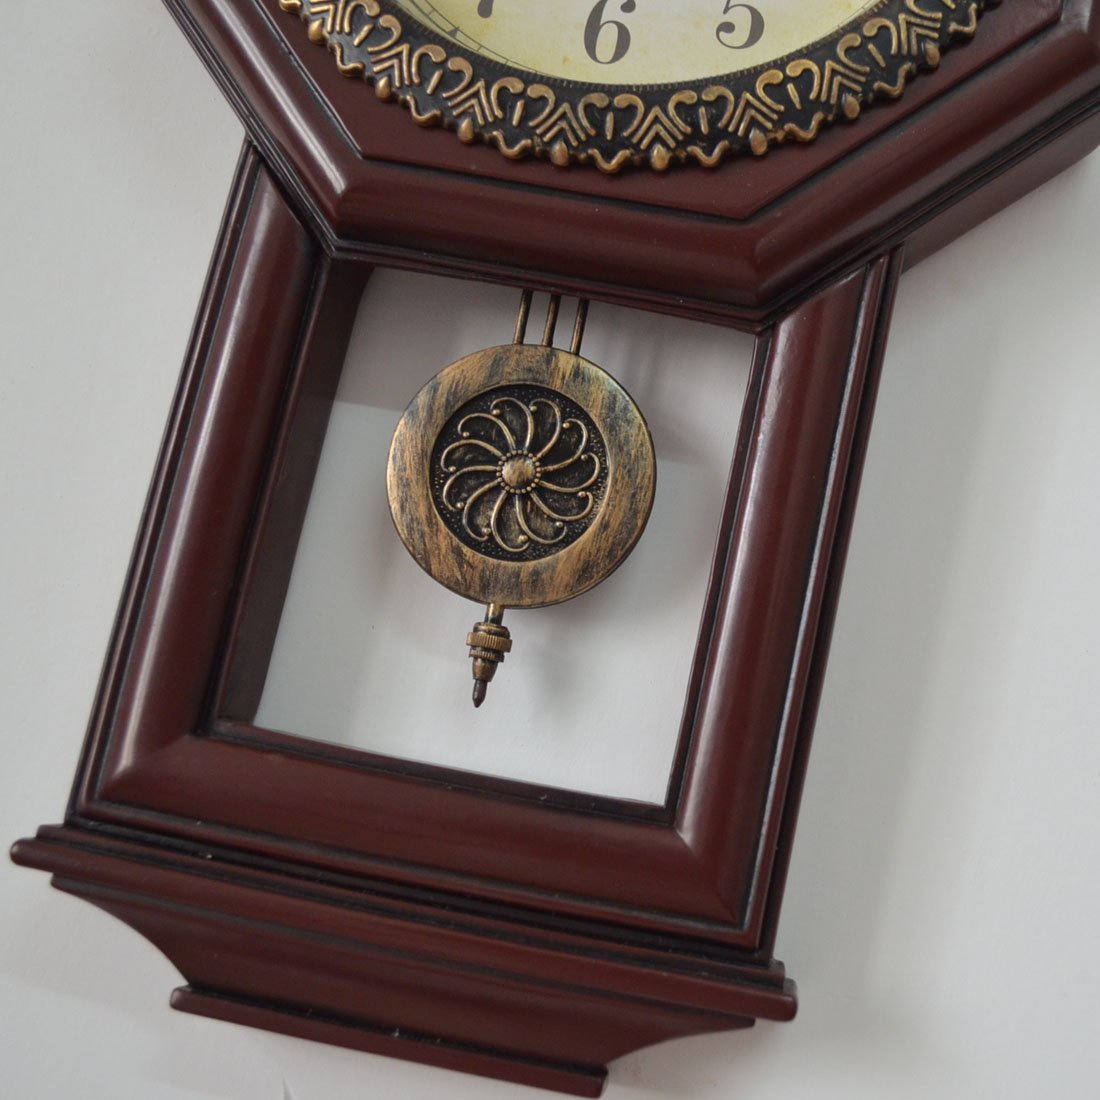 Giftgarden Housewarming Vintage Wall Clock Imitation Wood Color for Bedroom Decor 7